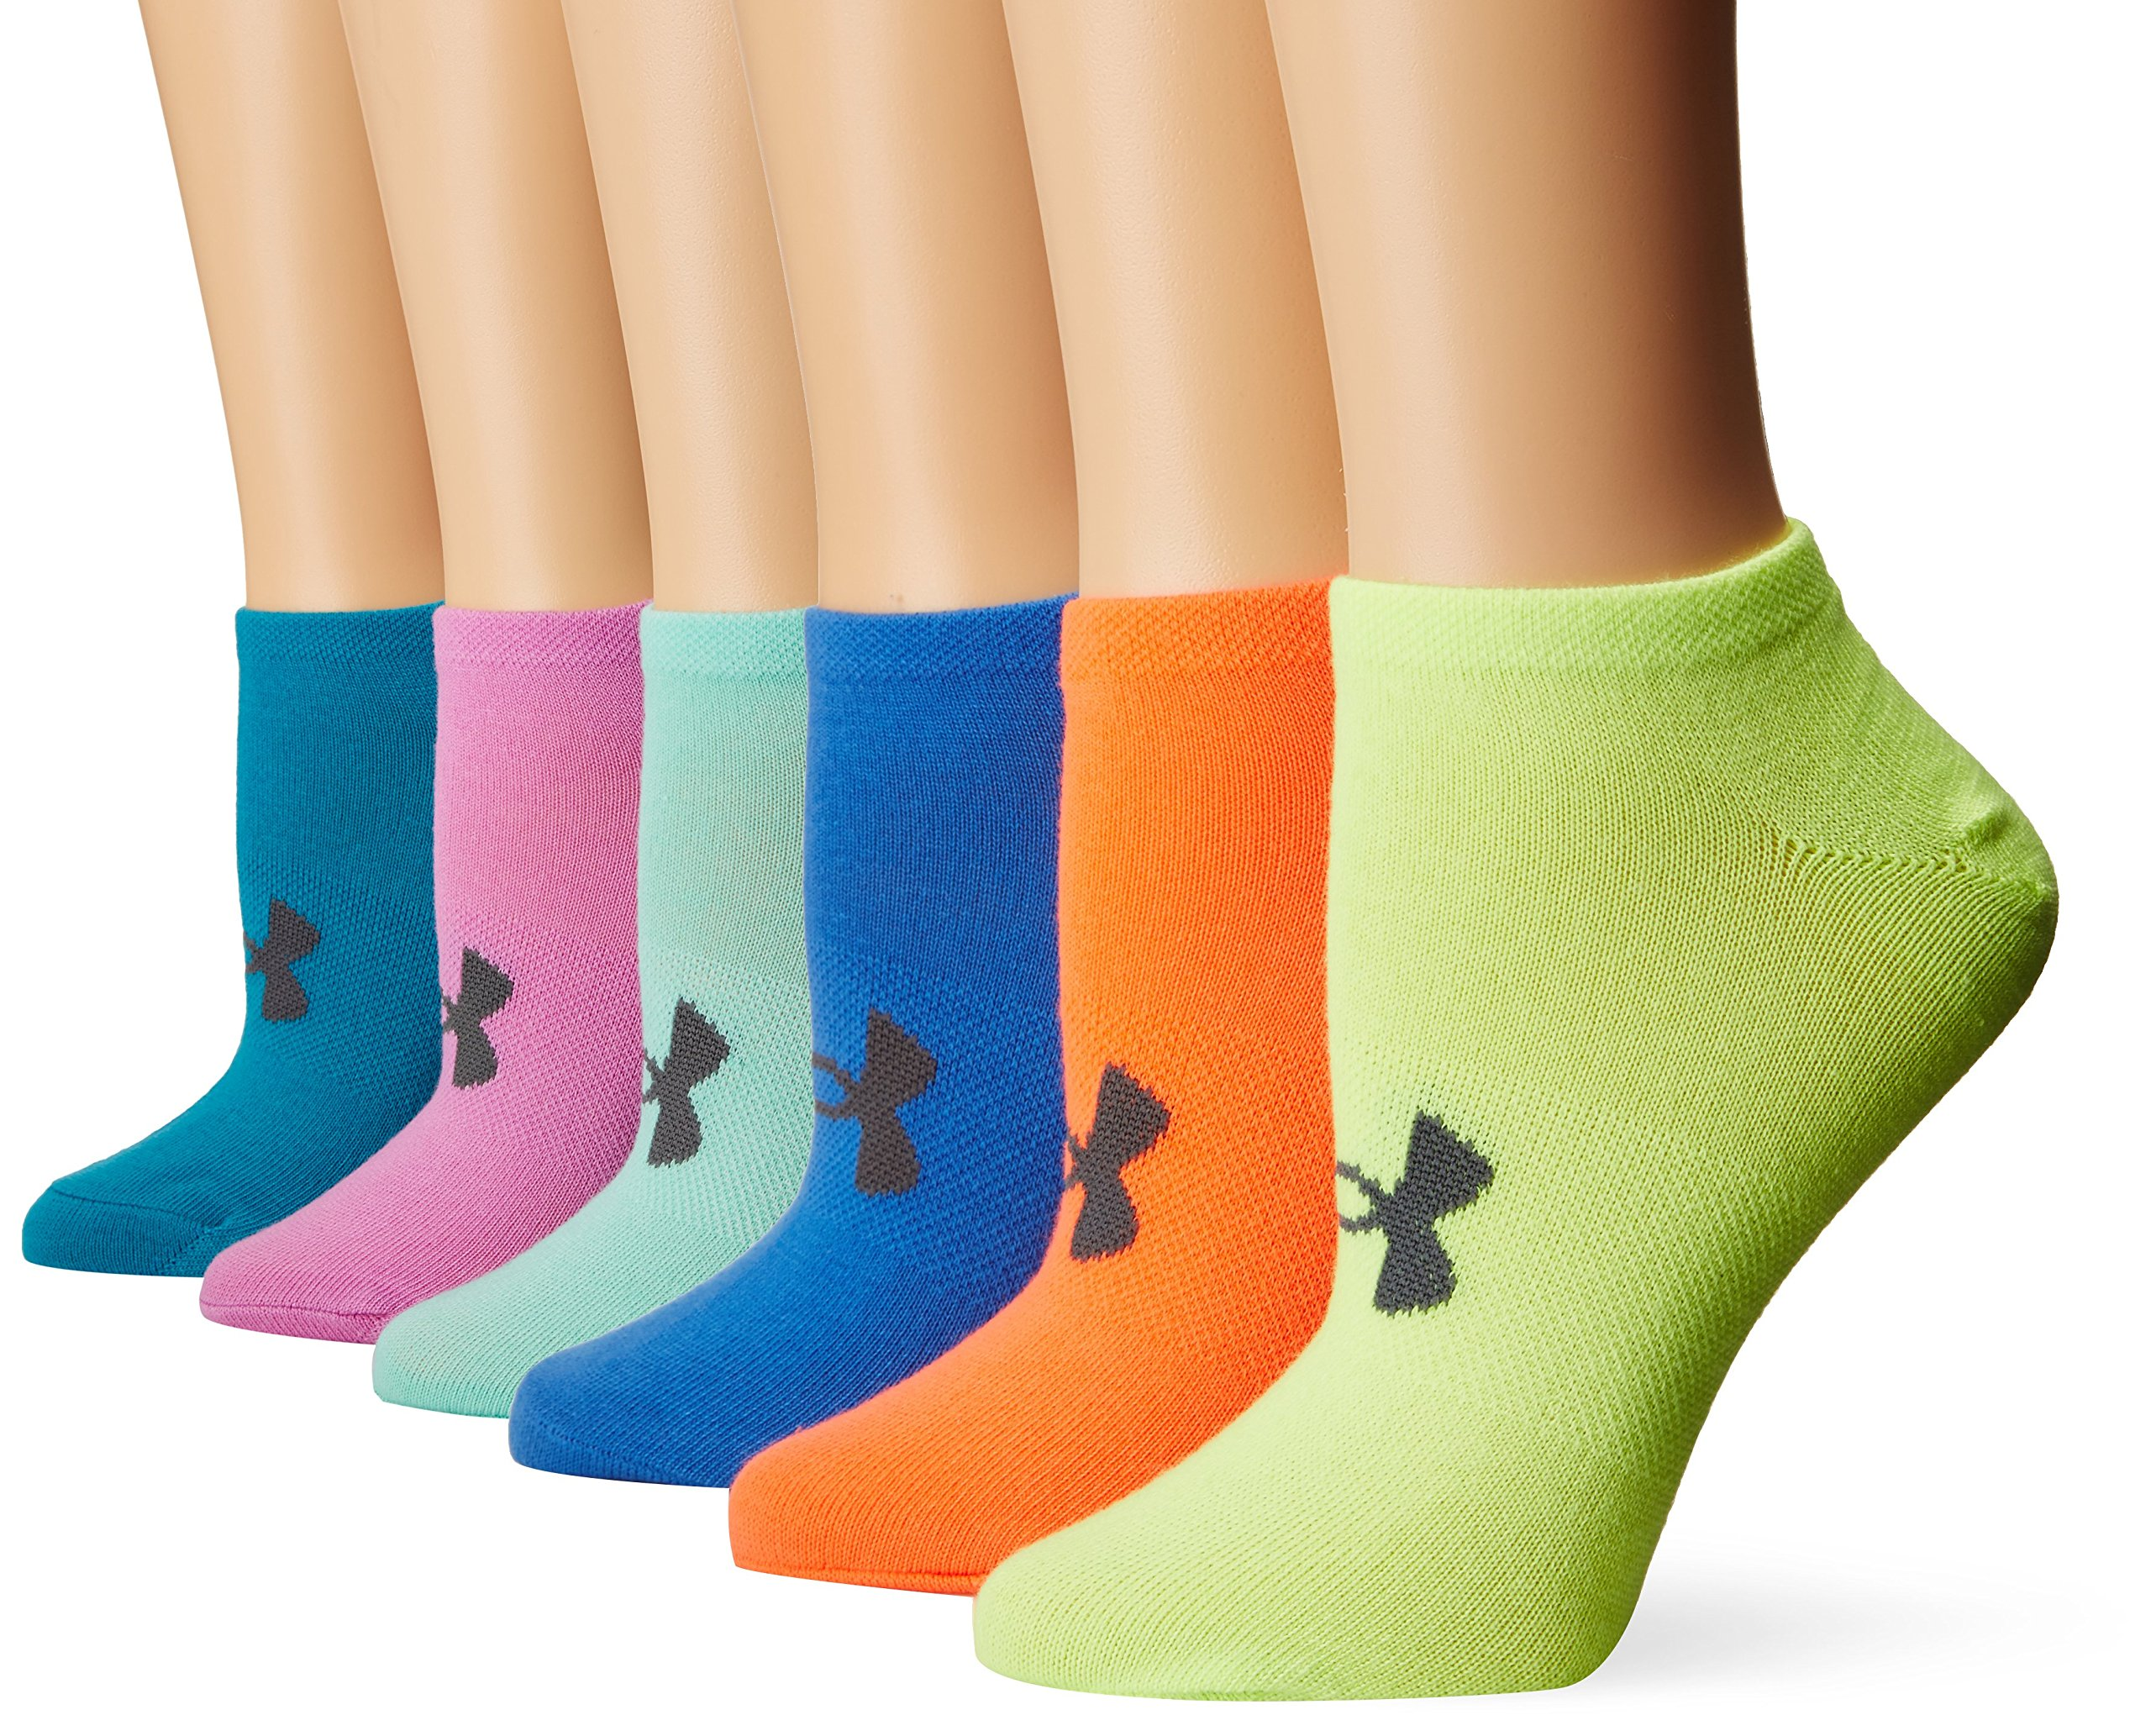 0e38304655761 Galleon - Under Armour Women's Essential No Show Socks (6 Pack),  Multicolor, Medium